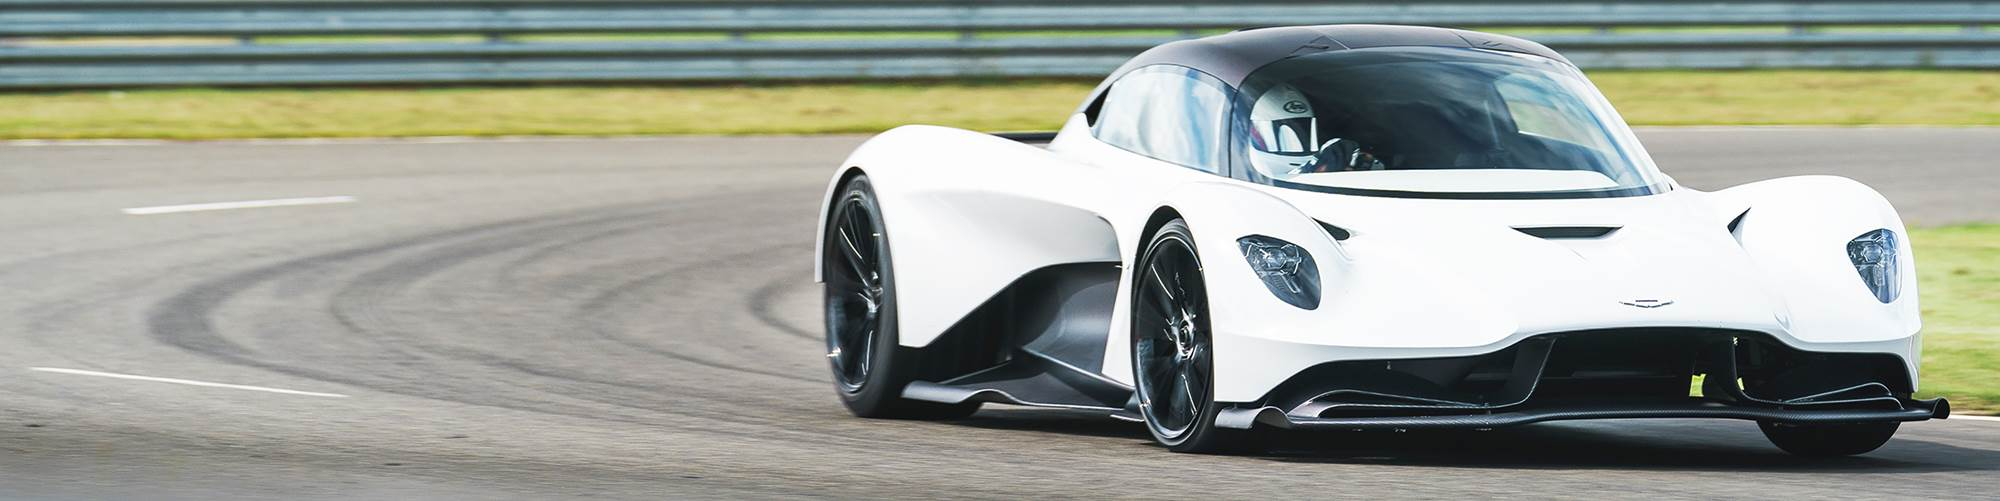 Aston Martin's upcoming Valhalla supercar will be powered by V-6 hybrid system